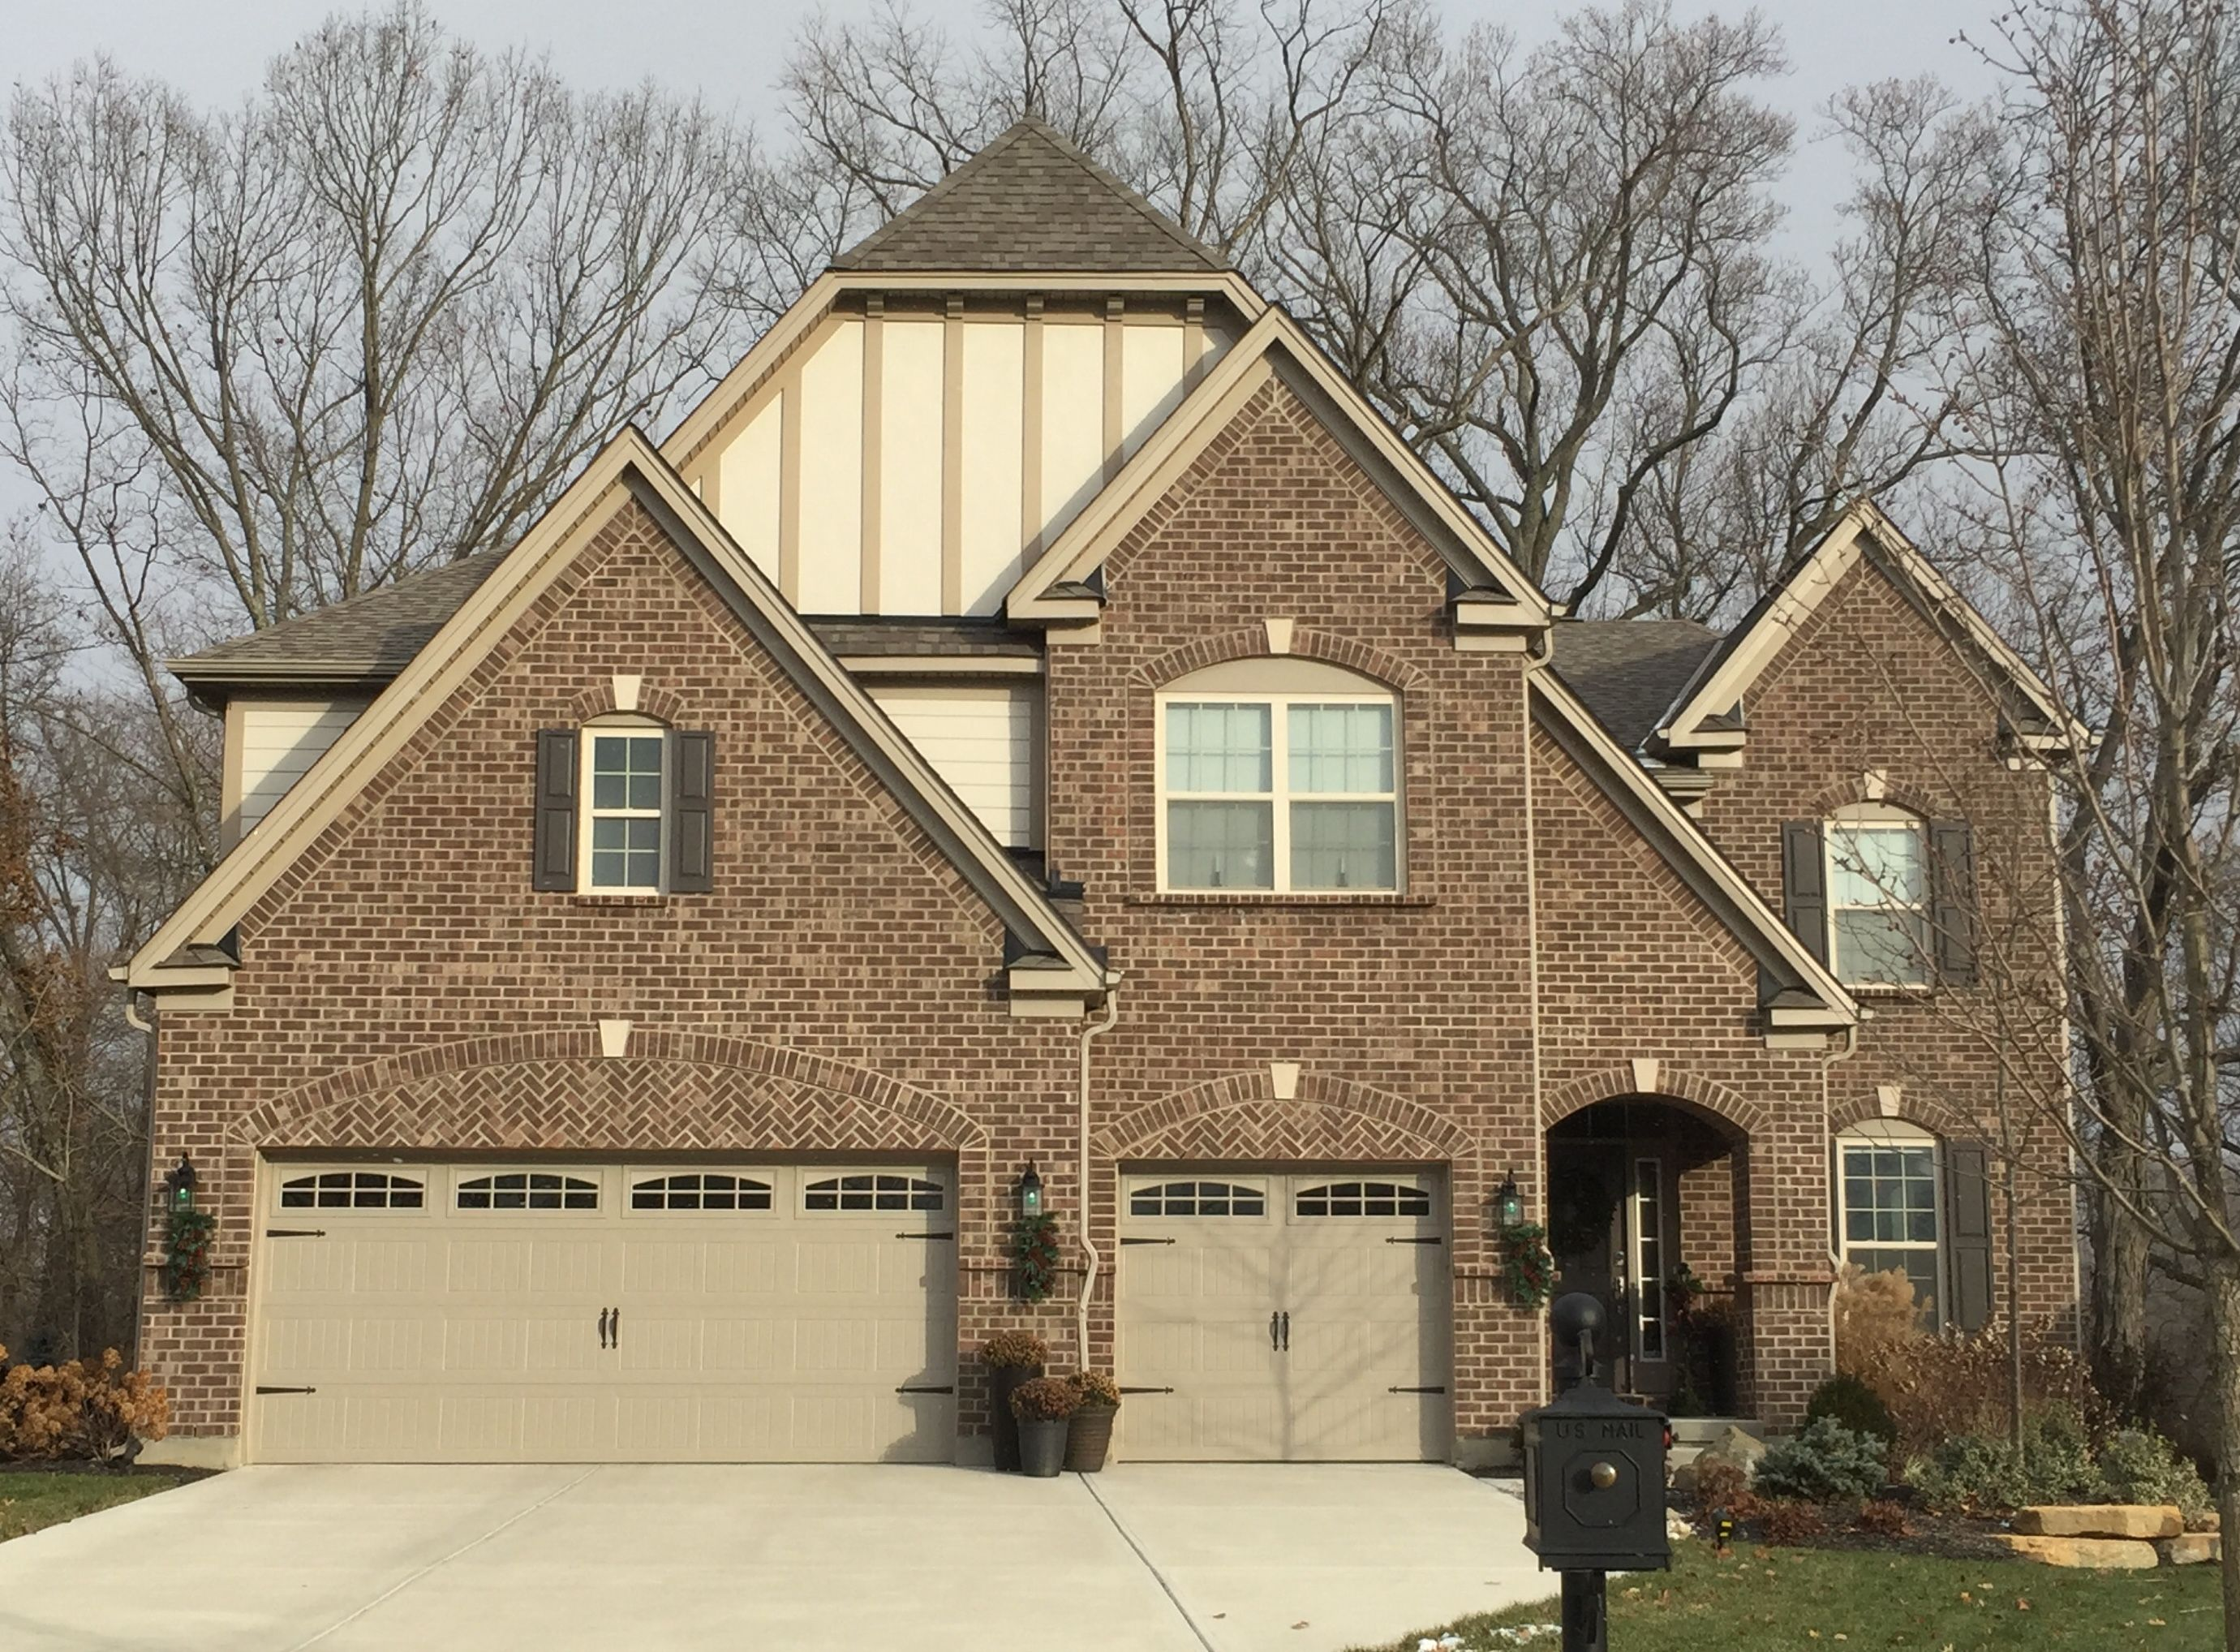 INDIANA MILLSTONE BRICK, COBBLESTONE SIDING, CLAY TRIM, MUSKET BROWN  SHUTTERS, SANDSTONE GARAGE